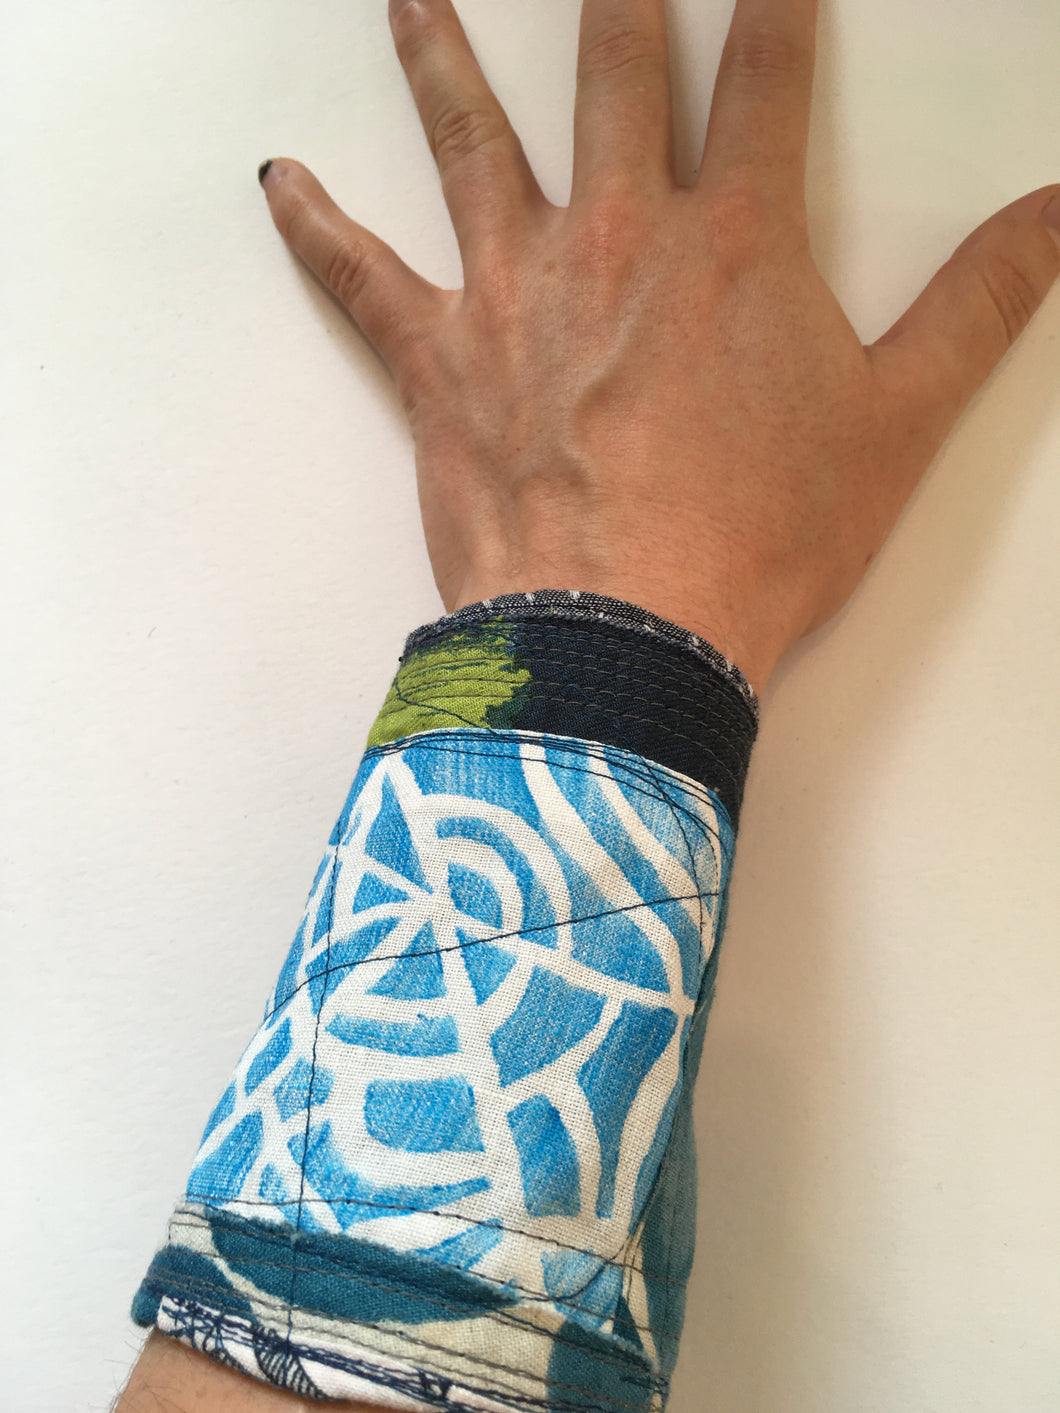 Wrist-Cuff / one-of-a-kind / hand-painted & collaged